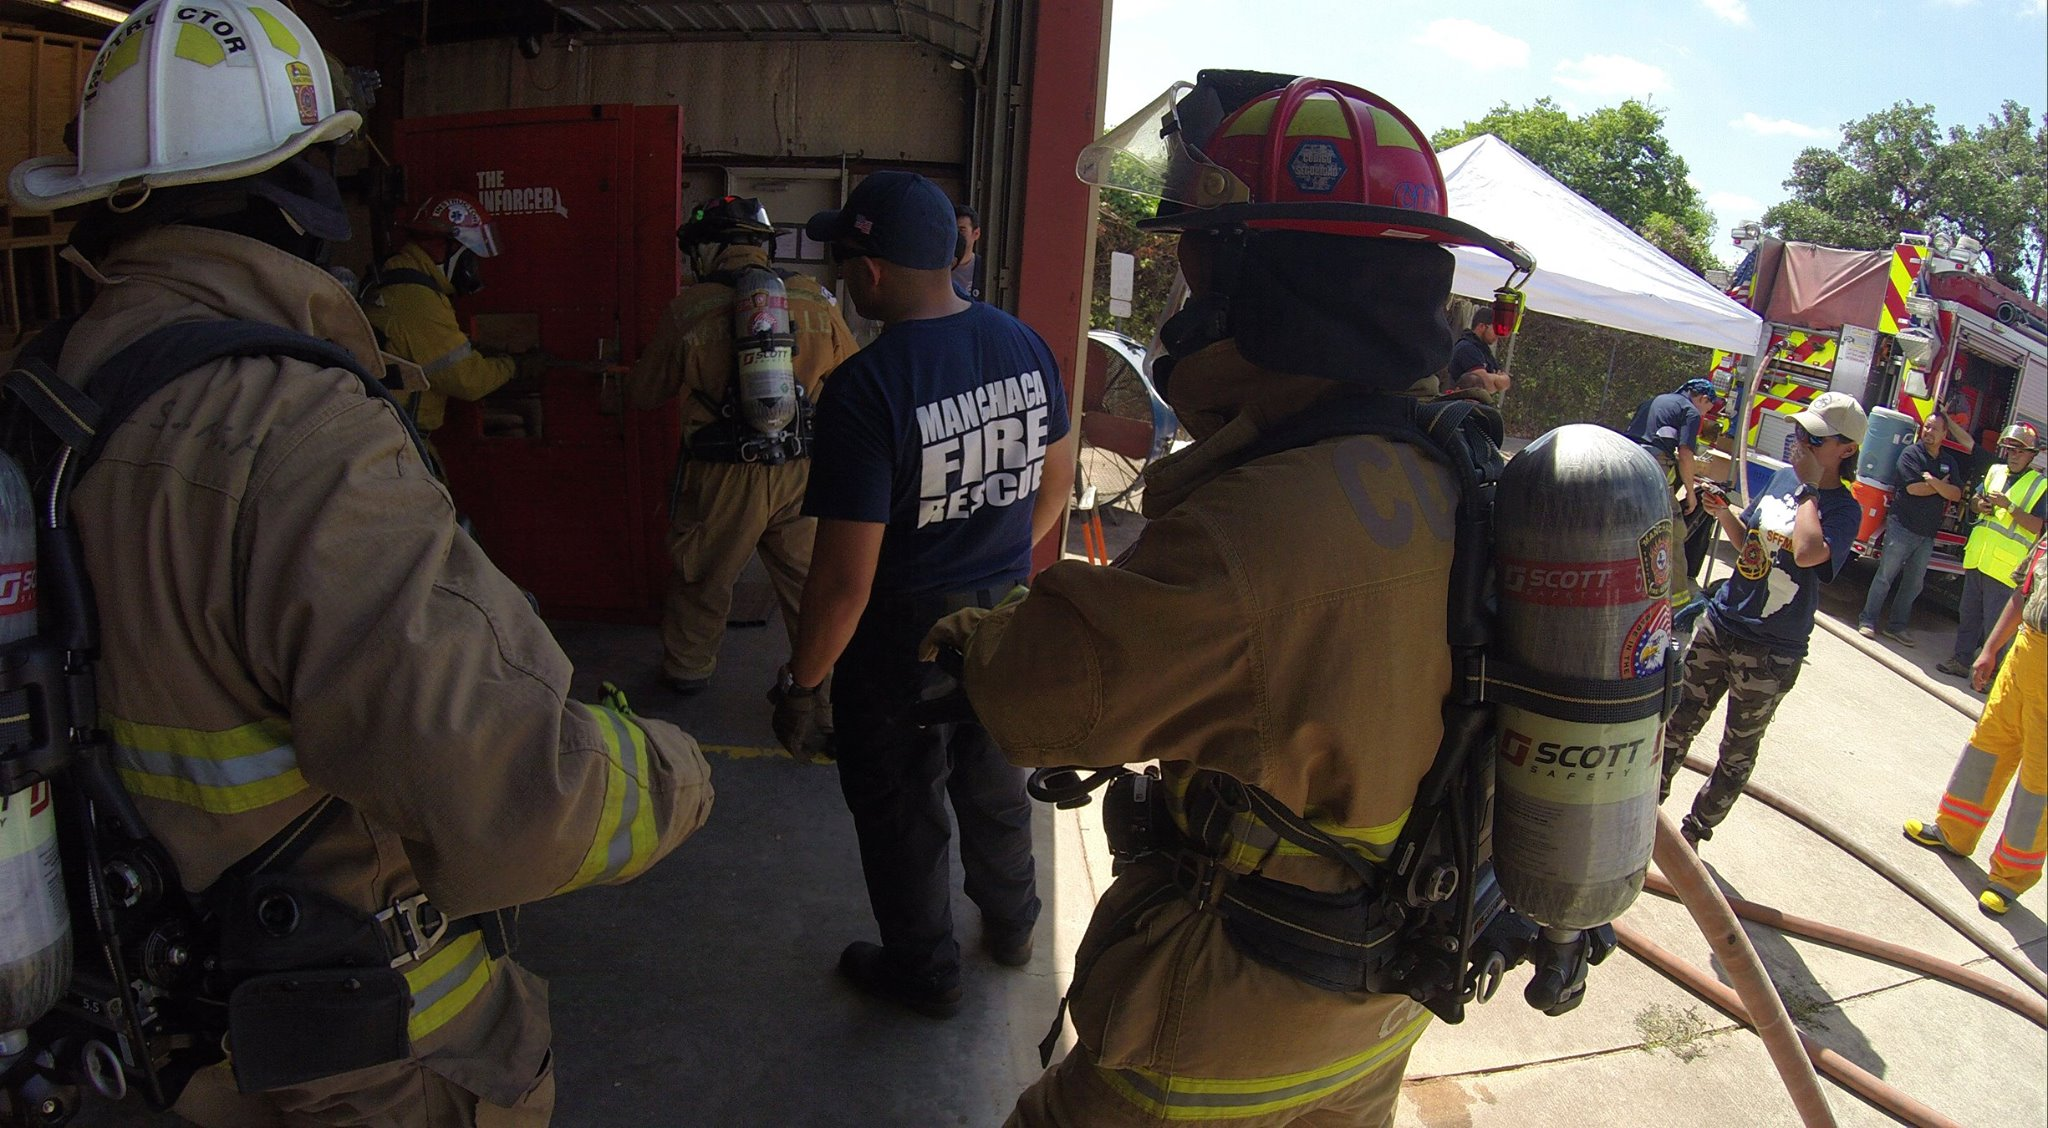 I'm interested in volunteering as a first responder. What training do you require?                                                                               - We are only able to accept volunteers that have current TCFP Firefighter  Basic and TDHS EMT certification due to our auto-aid agreement with the  Austin Auto Aid Coalition.